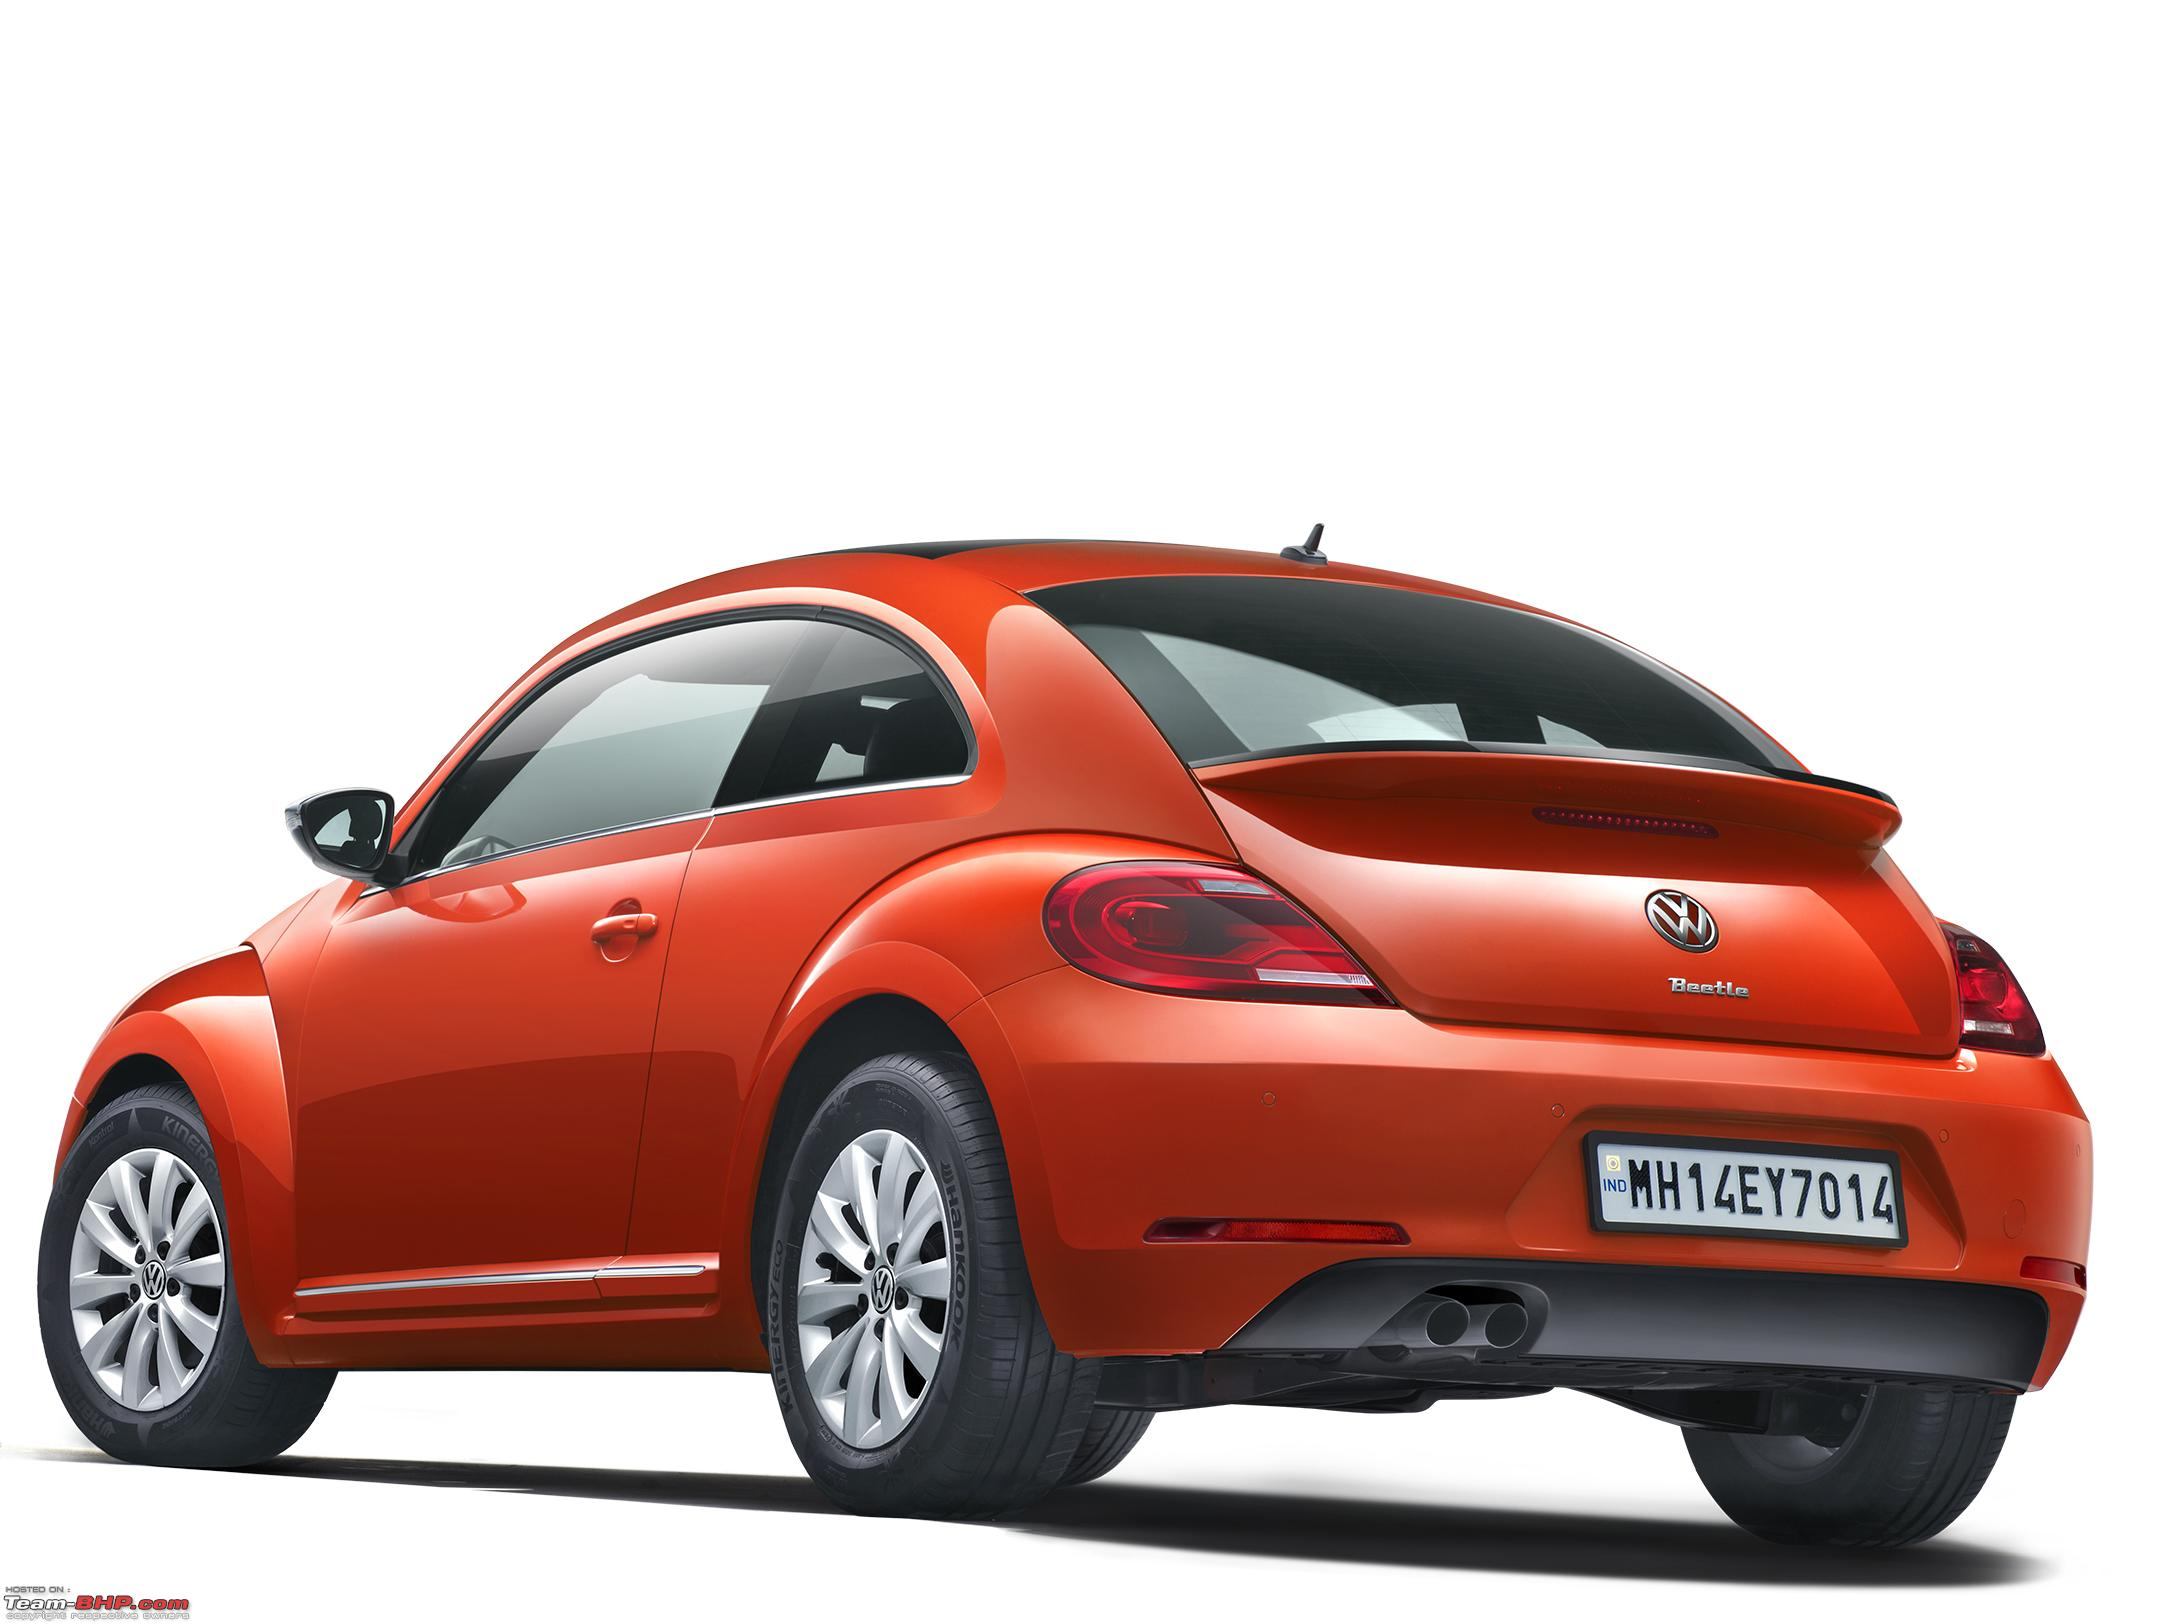 Volkswagen Beetle Launched In India At Rs 28 73 Lakh Team Bhp